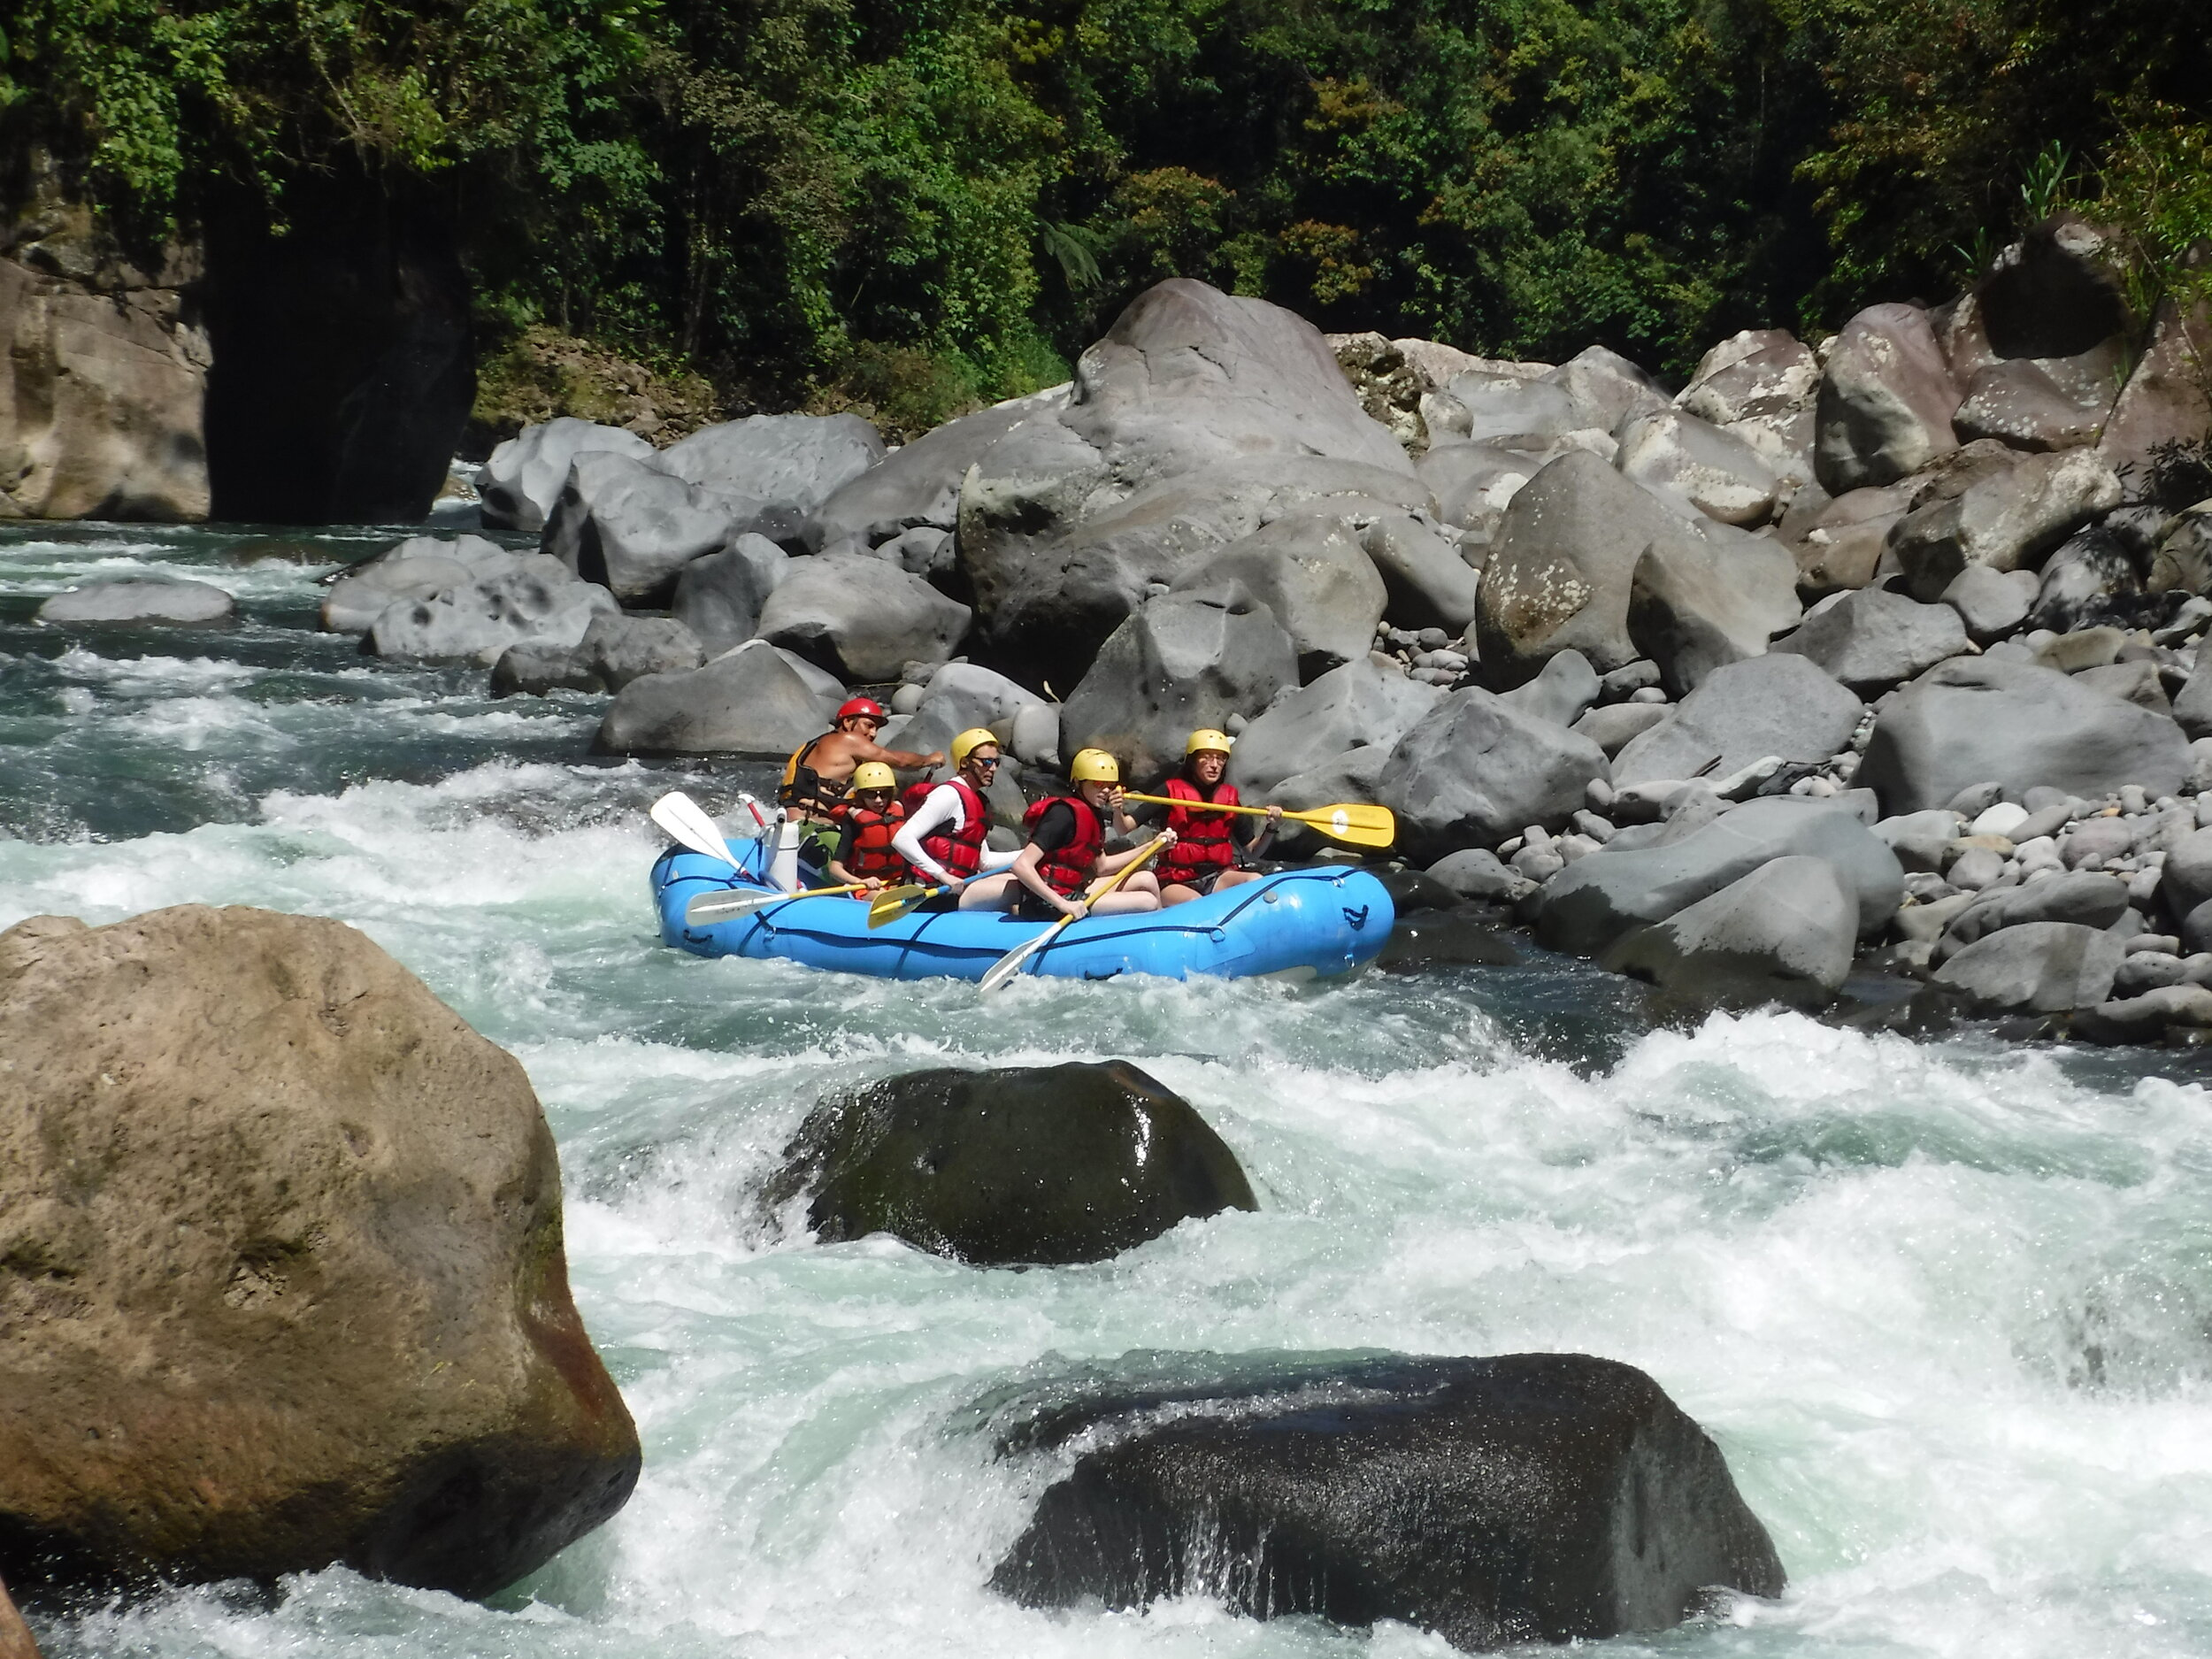 World Class Whitewater - Incredible Class III-IV whitewater on one the top 10 rivers to raft according to National Geogrpahic Magazine